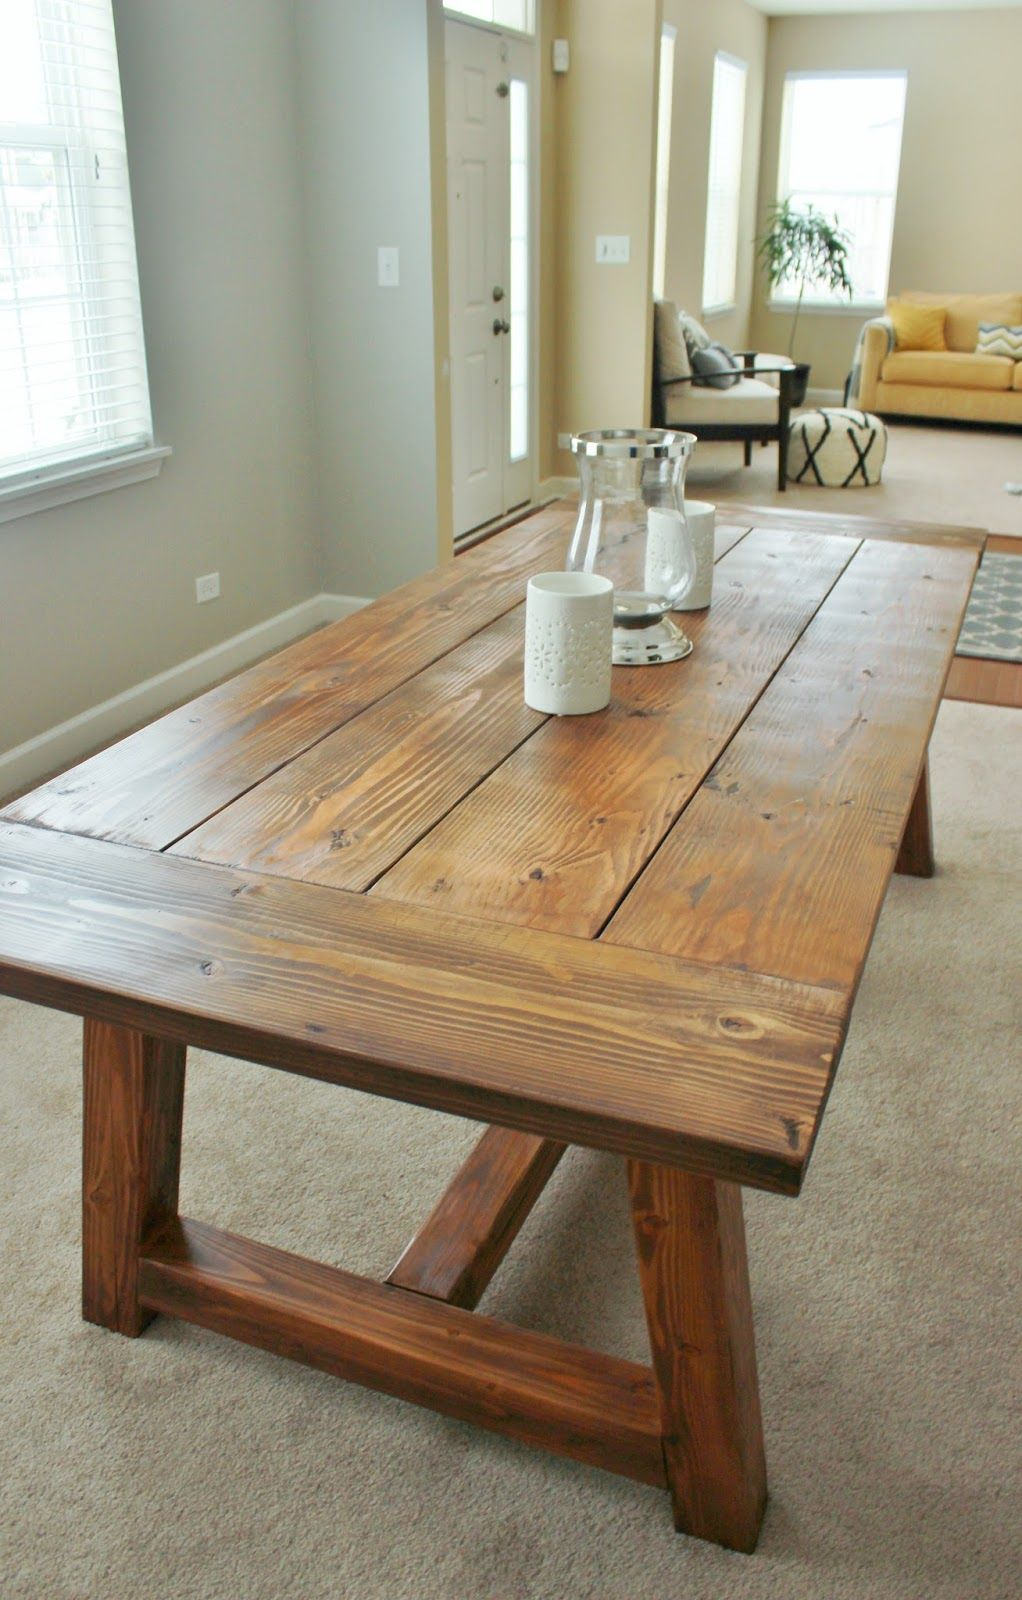 How To Build A Farmhouse Table Includes Plans From Ana White